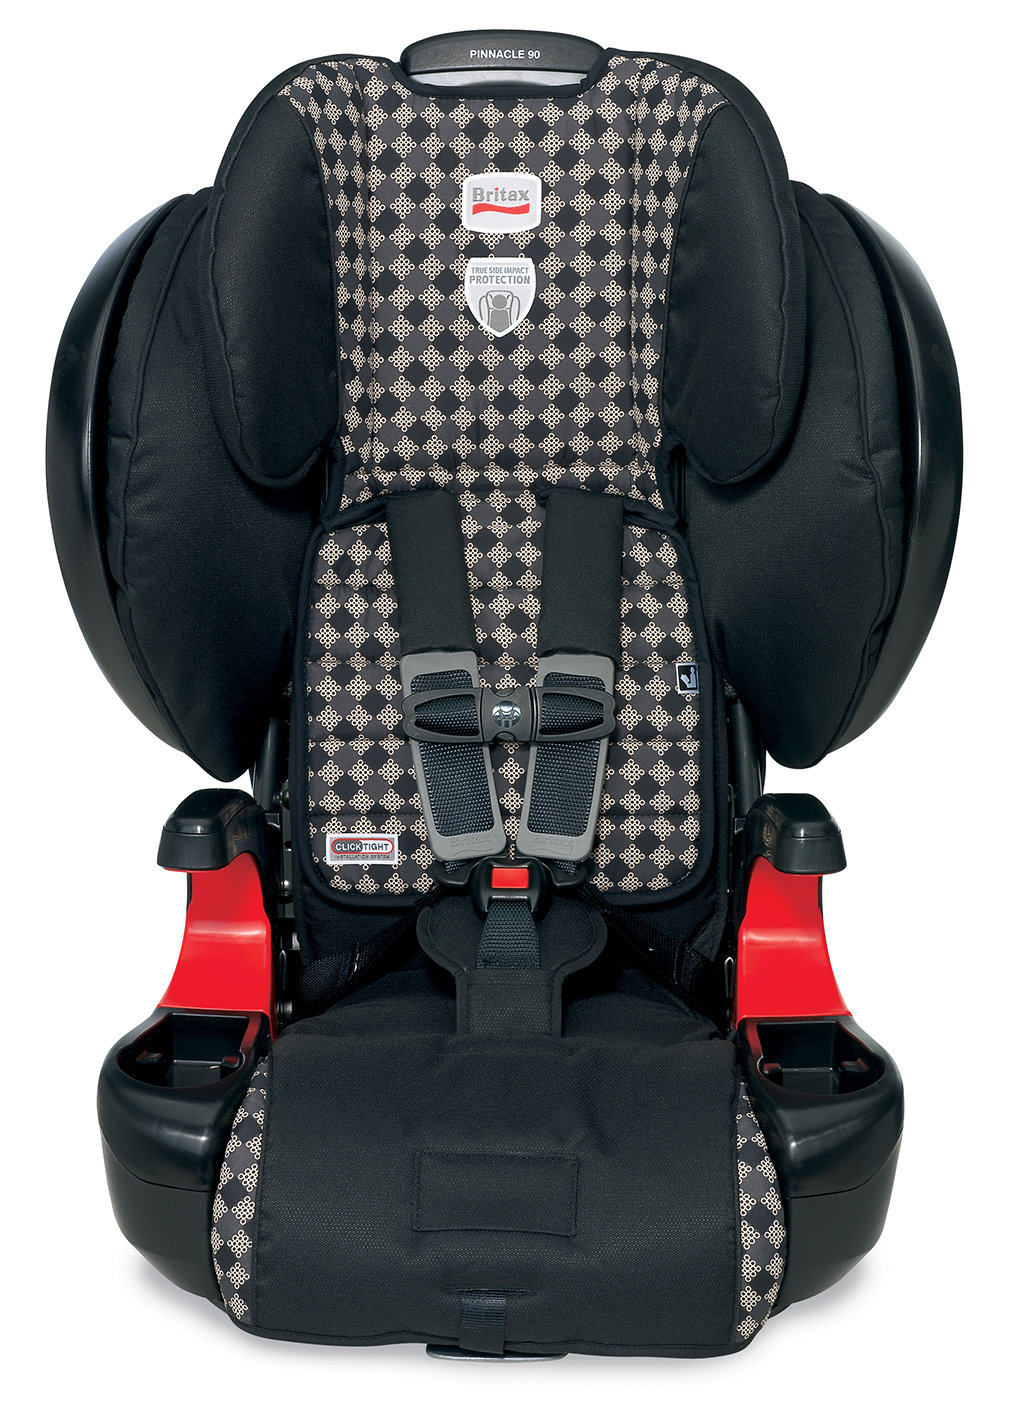 britax pinnacle 90 booster car seat cityscape child safety booster car seats baby. Black Bedroom Furniture Sets. Home Design Ideas